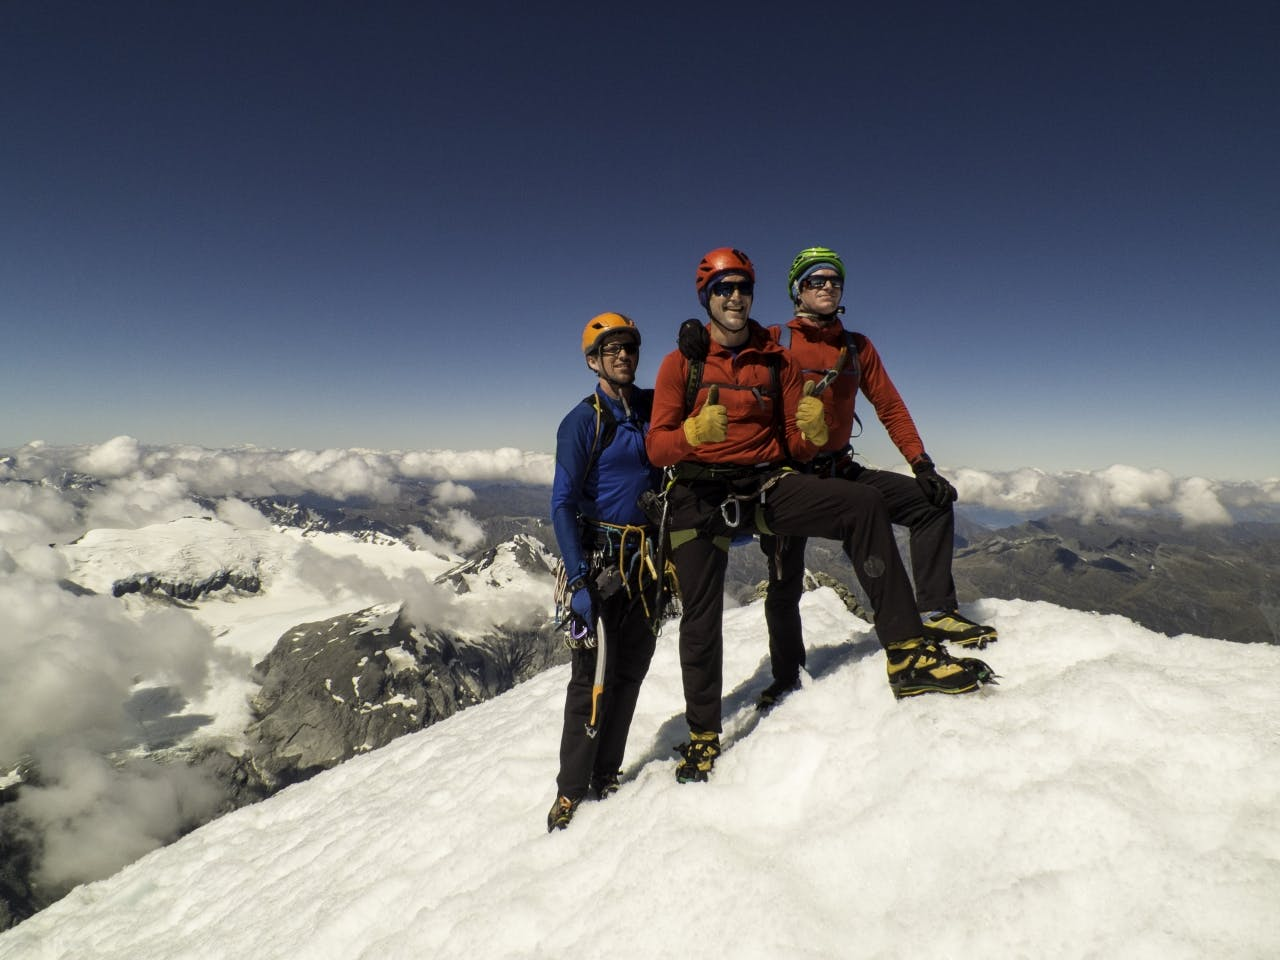 Danny Murphy, Steve Skelton and Ben Dare on the summit of Mt Aspiring. Photo: Pete Harris